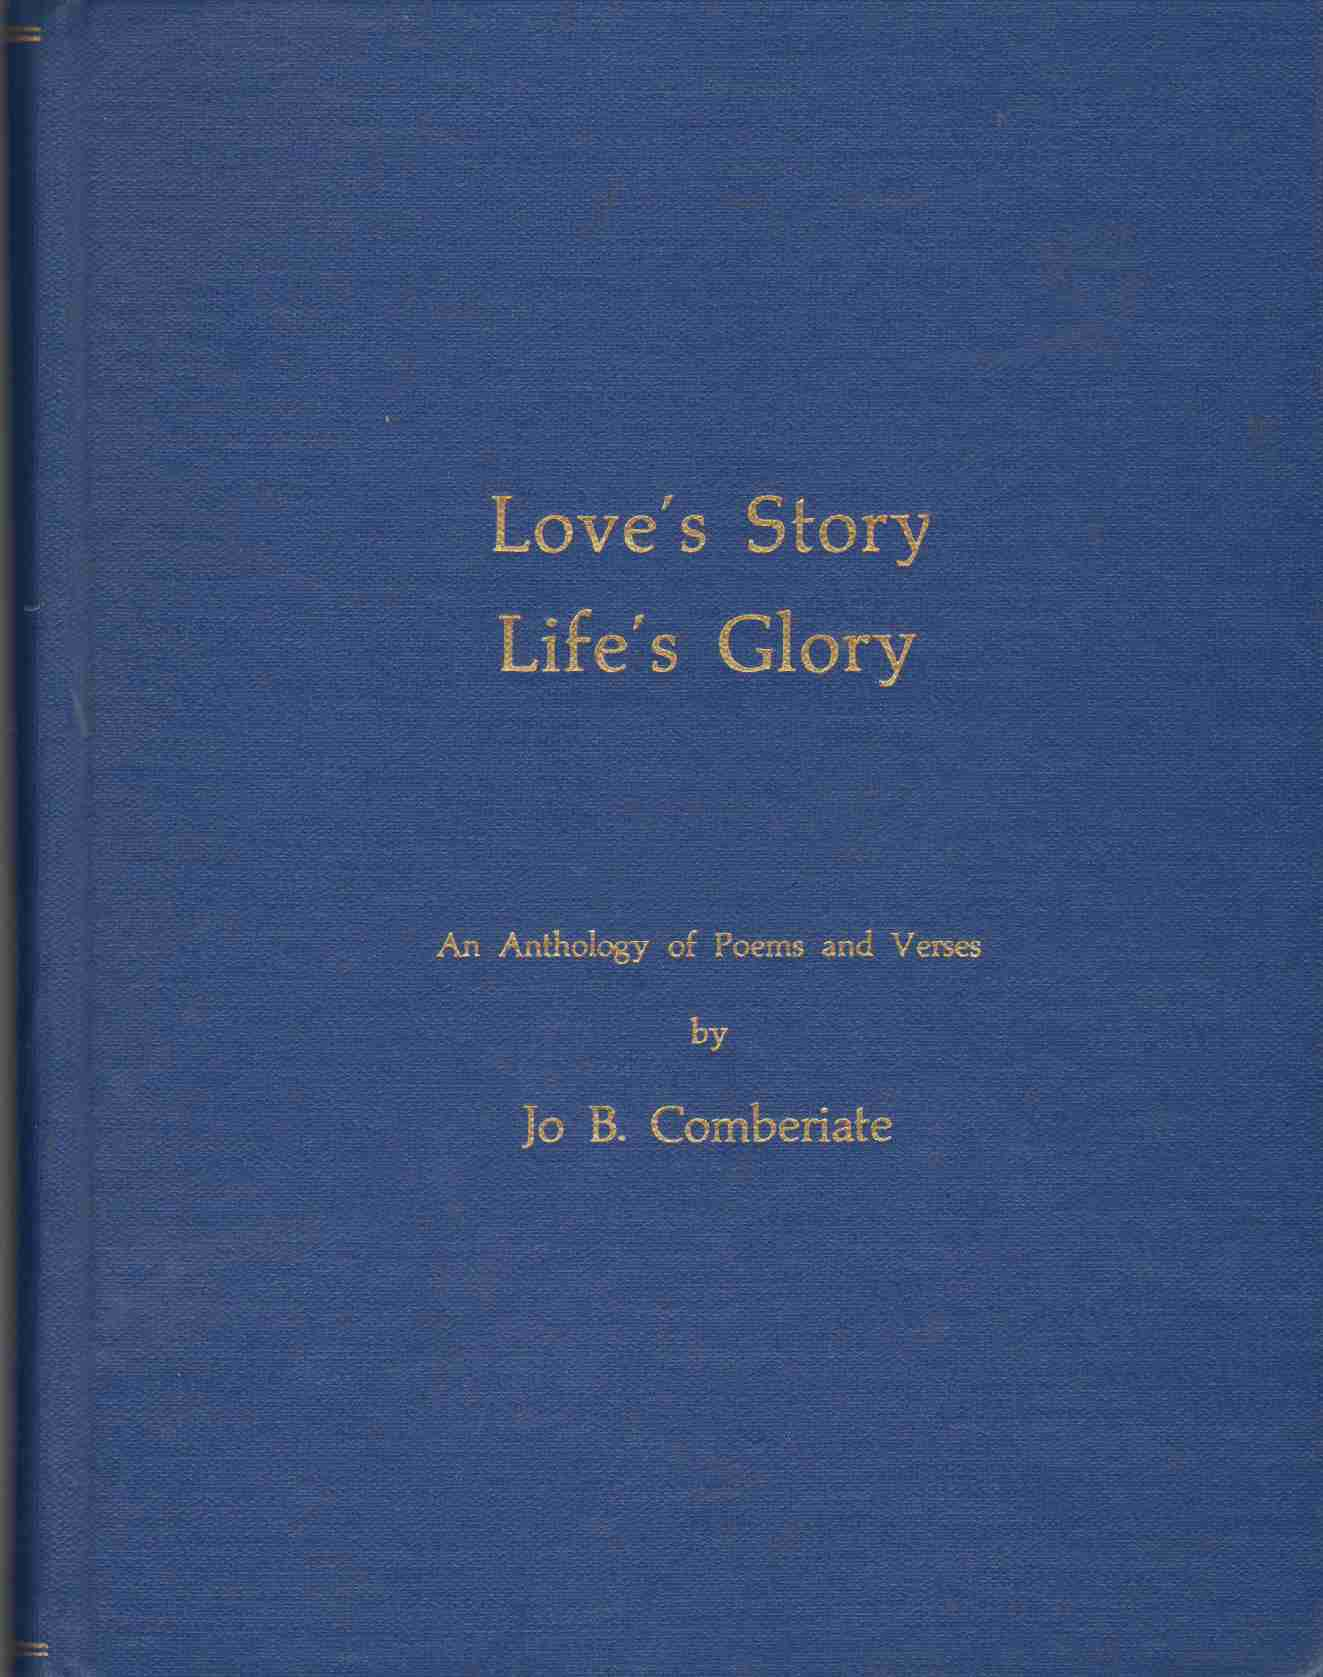 Image for LOVE'S STORY LIFE'S GLORY An Anthology of Poems and Verses